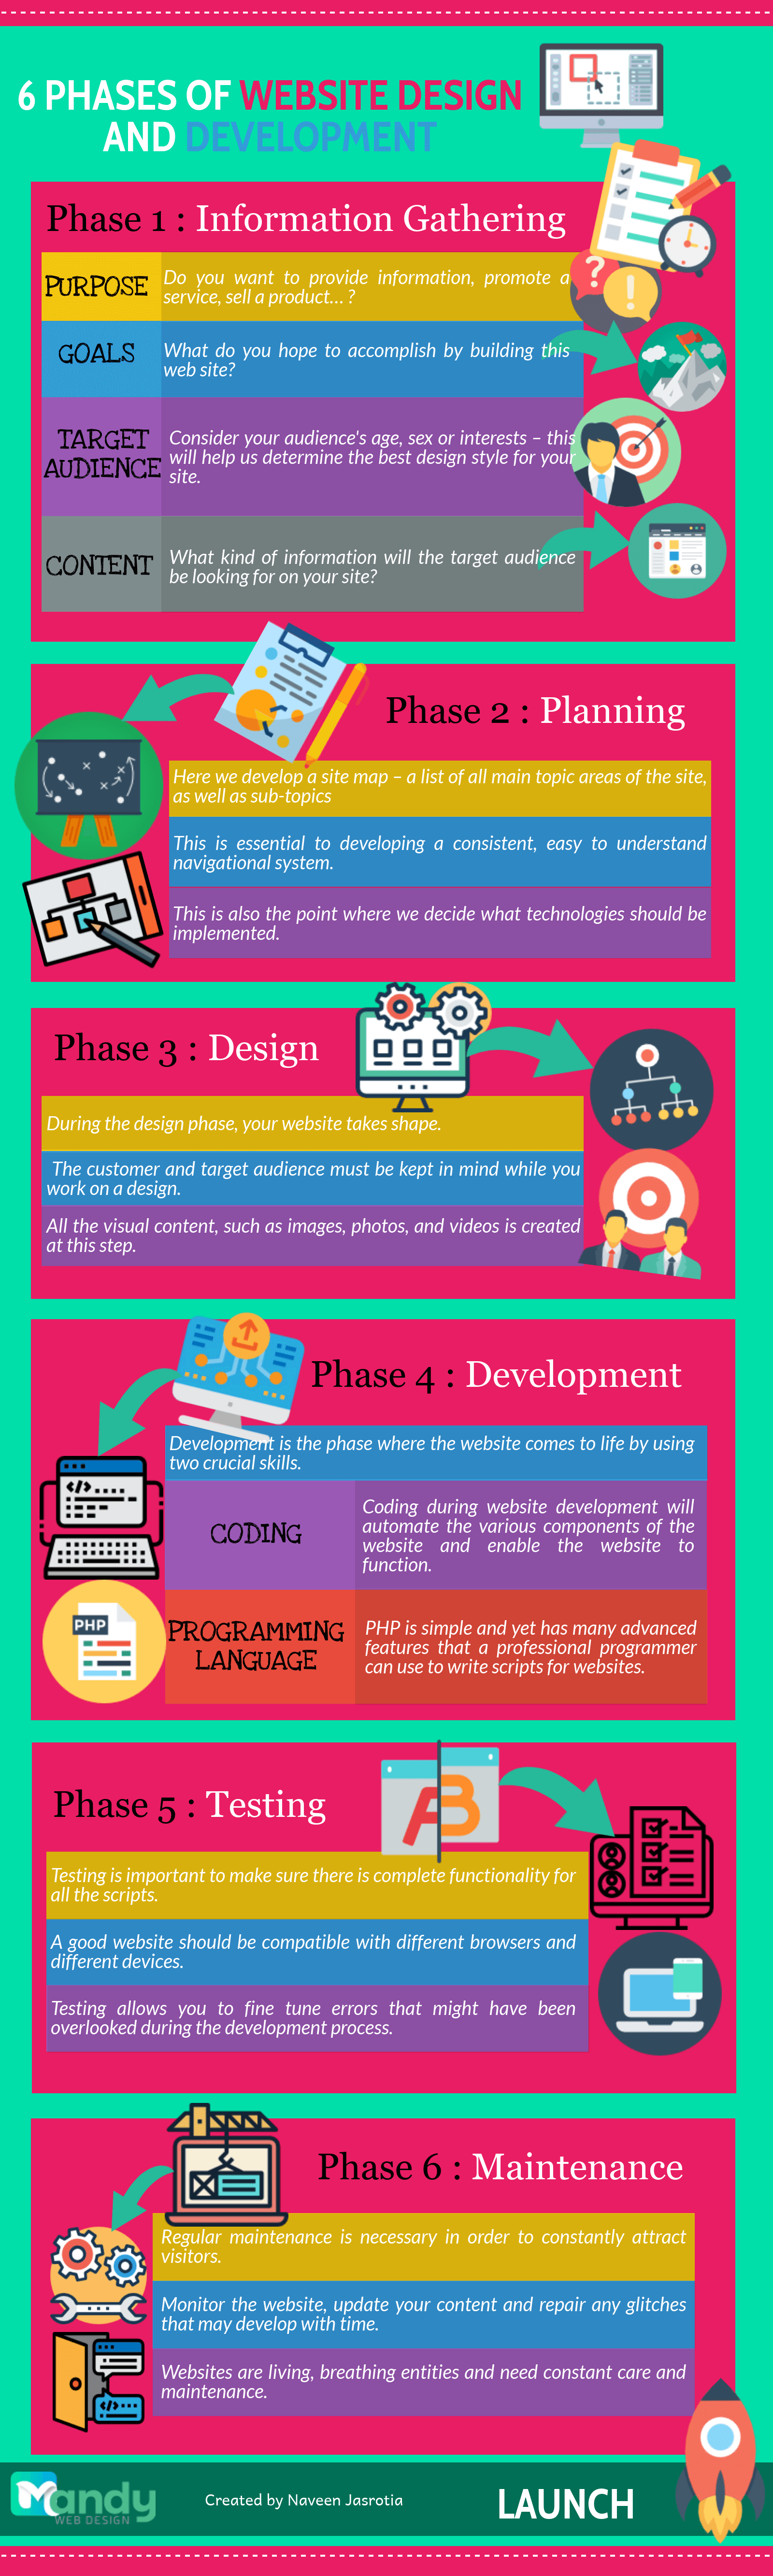 This Pic is infographic of phases of web design and development